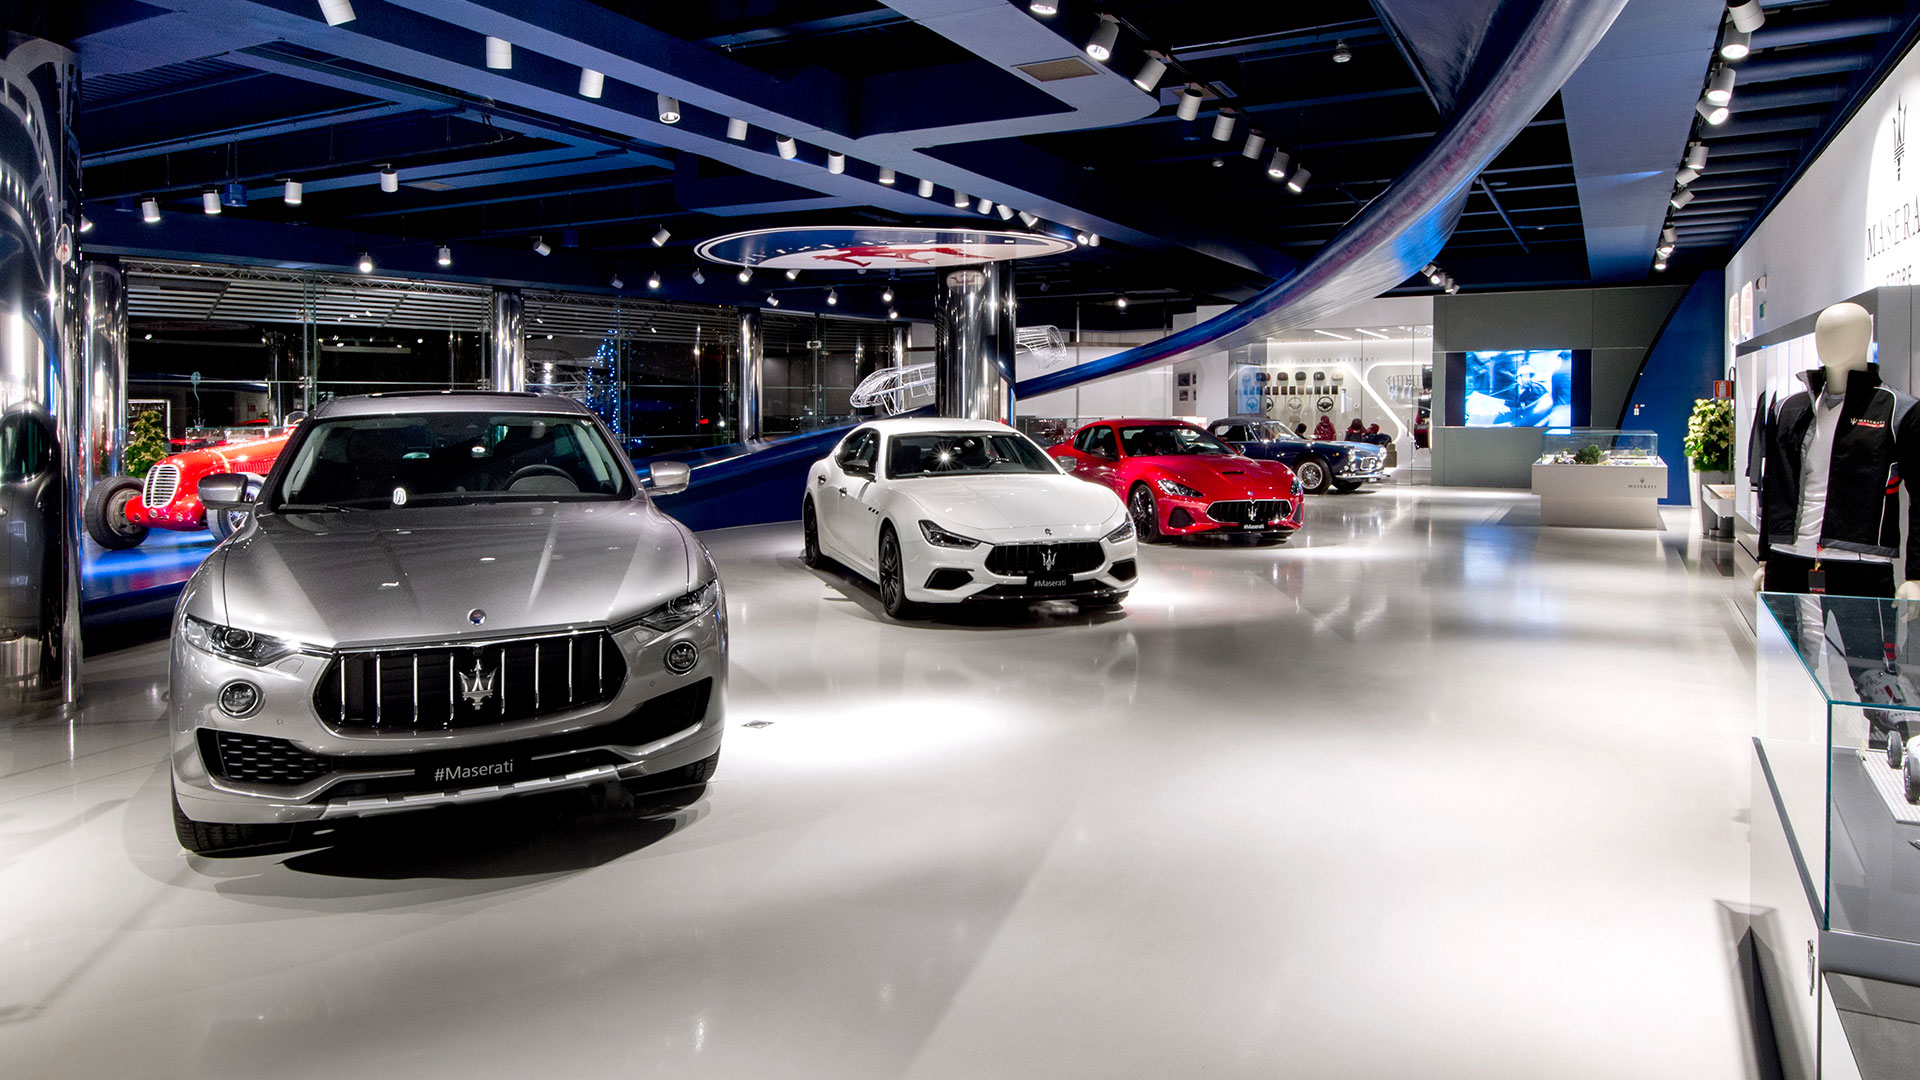 Special openings showroom Maserati